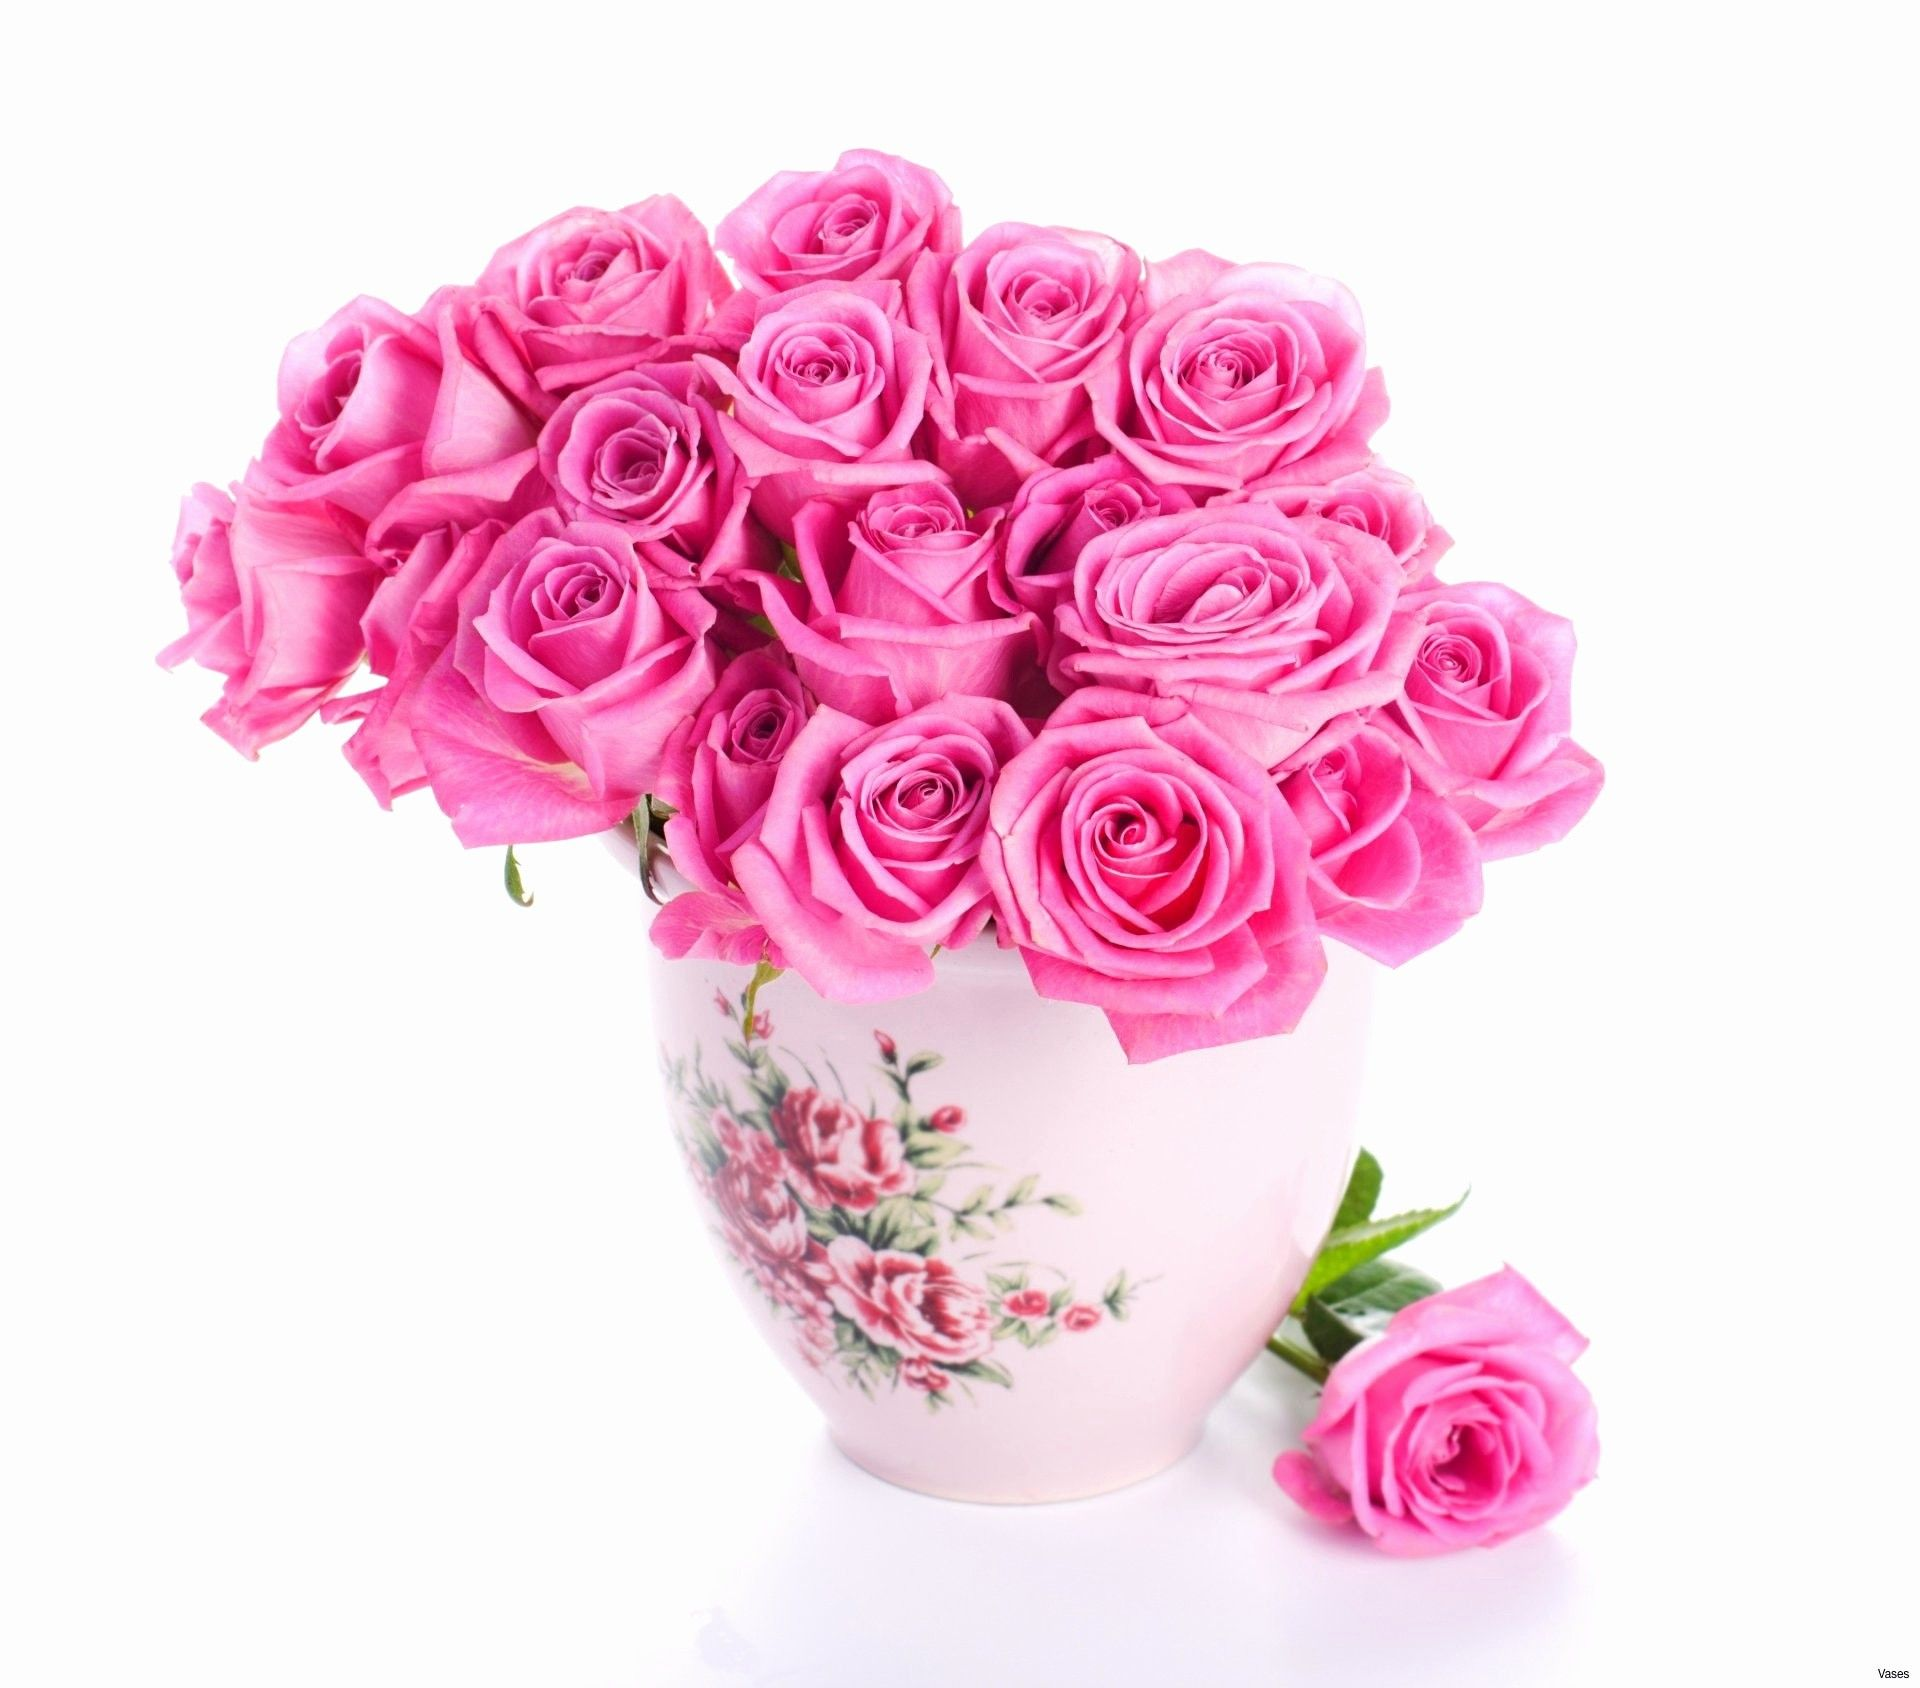 Free Wallpaper Lovely Rose Flower Vase Hd Free Wallpaper Rose Wallpaper Beautiful Flowers Wallpapers Free Wallpaper